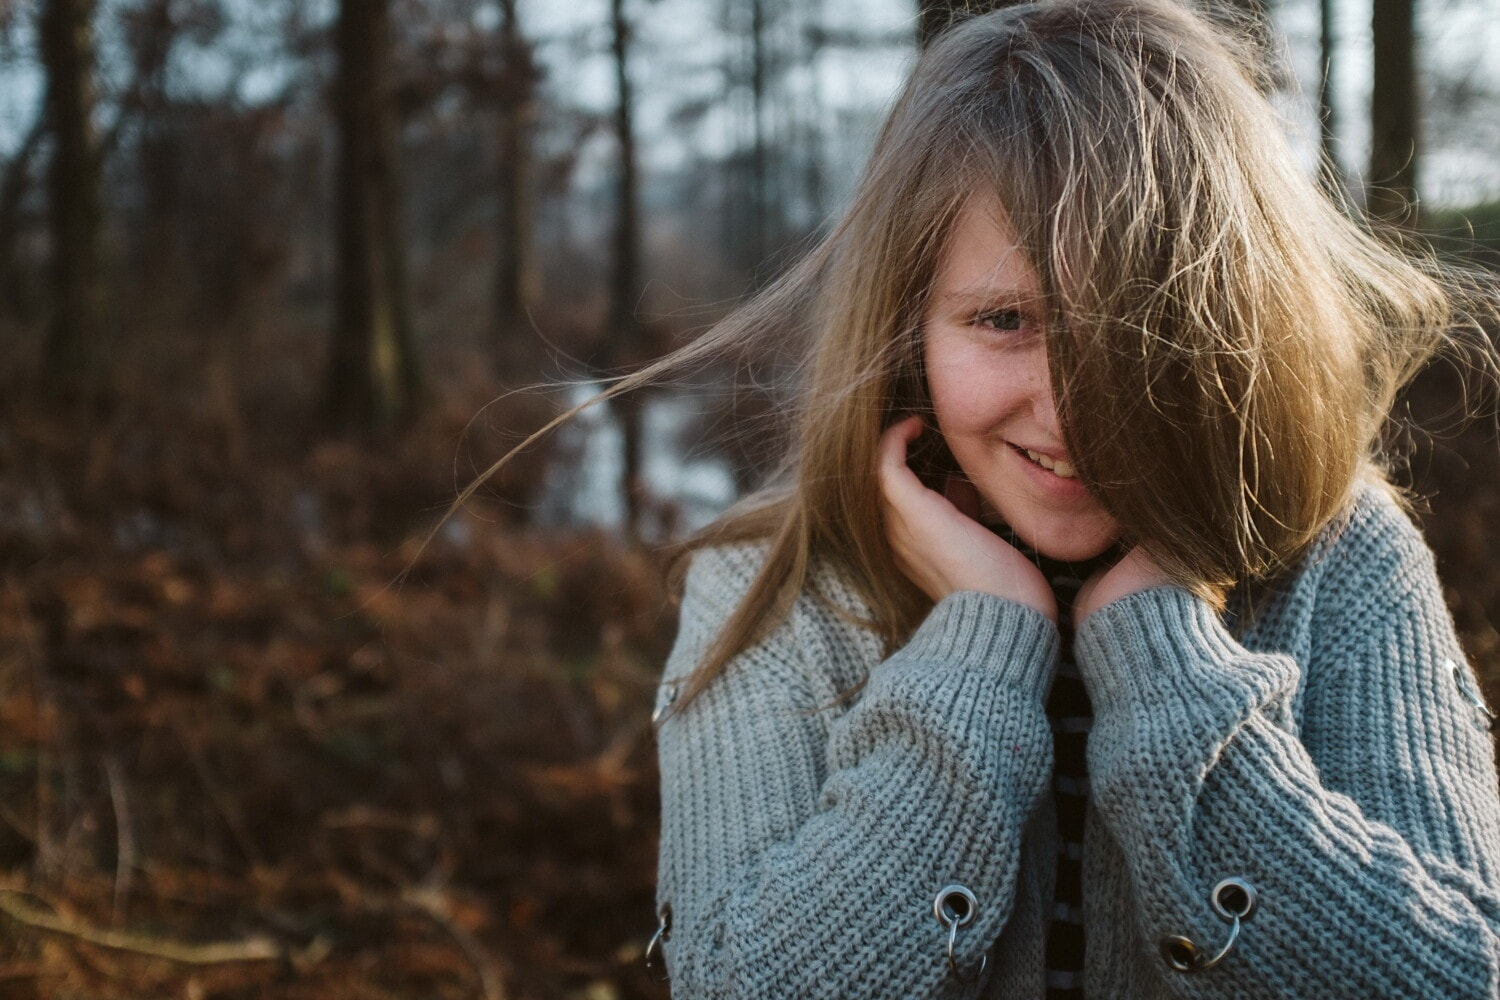 emotion, happiness, teenager, girl, portrait, hair, cardigan, nature, sweater, outdoors